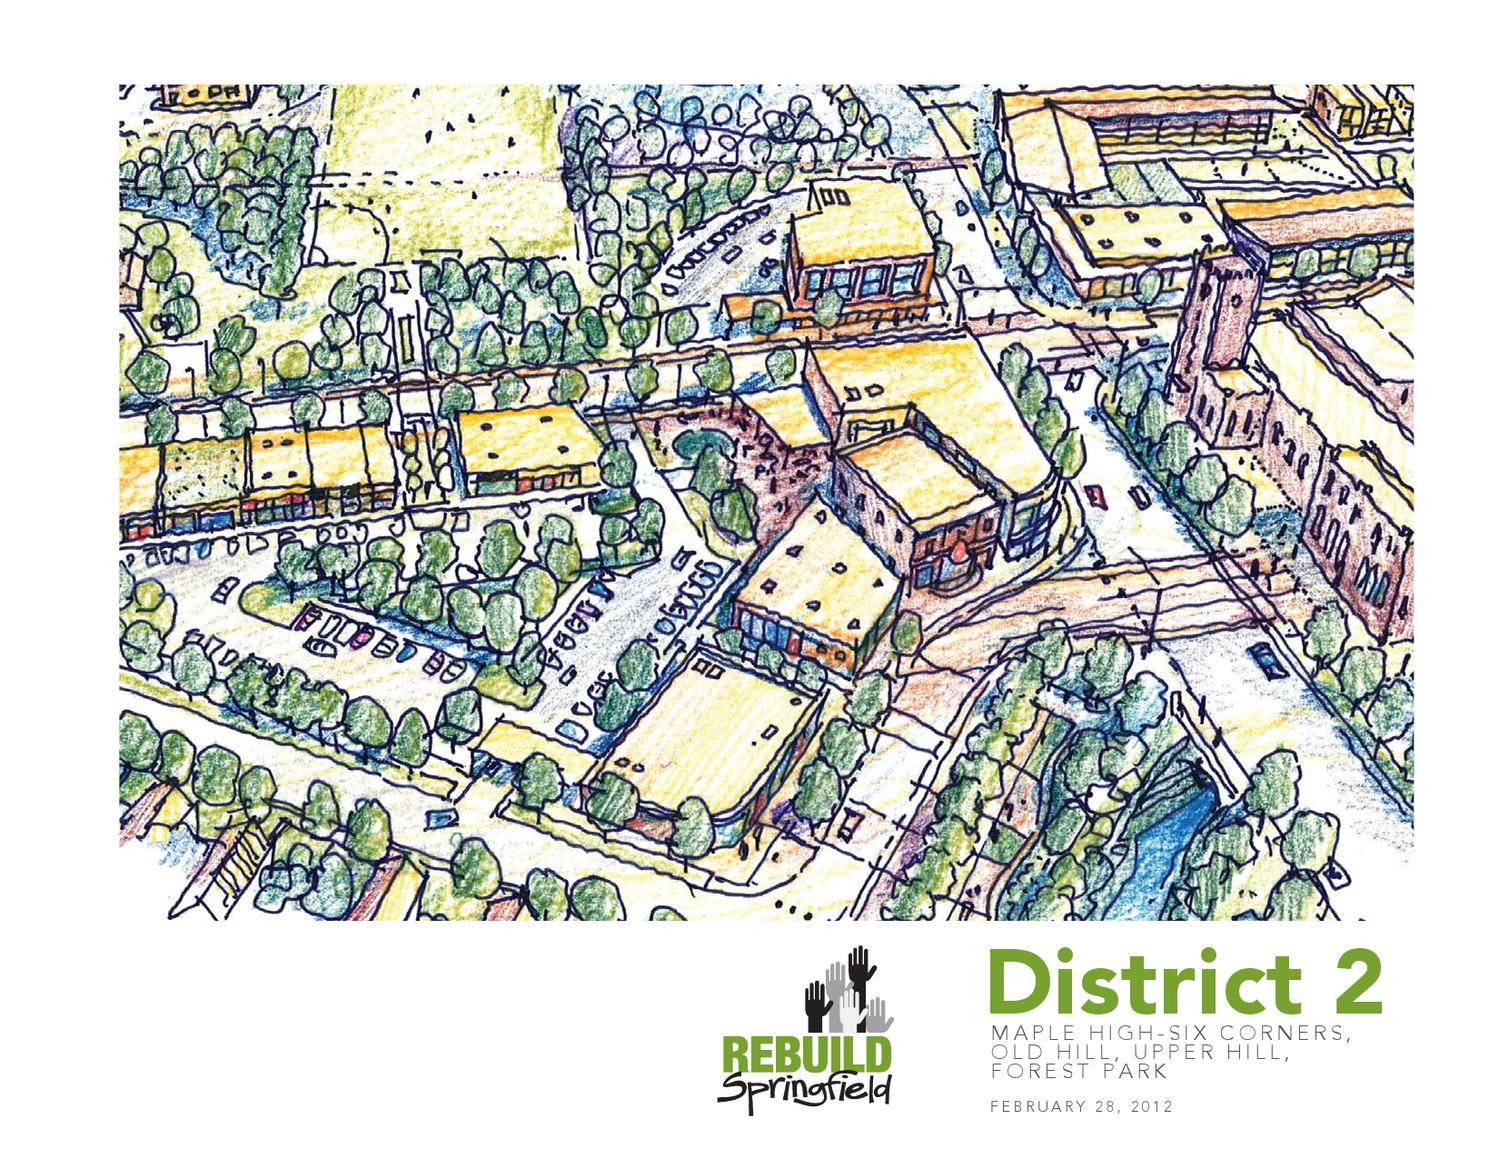 Springfield Recovery Plan by BNIM - issuu on